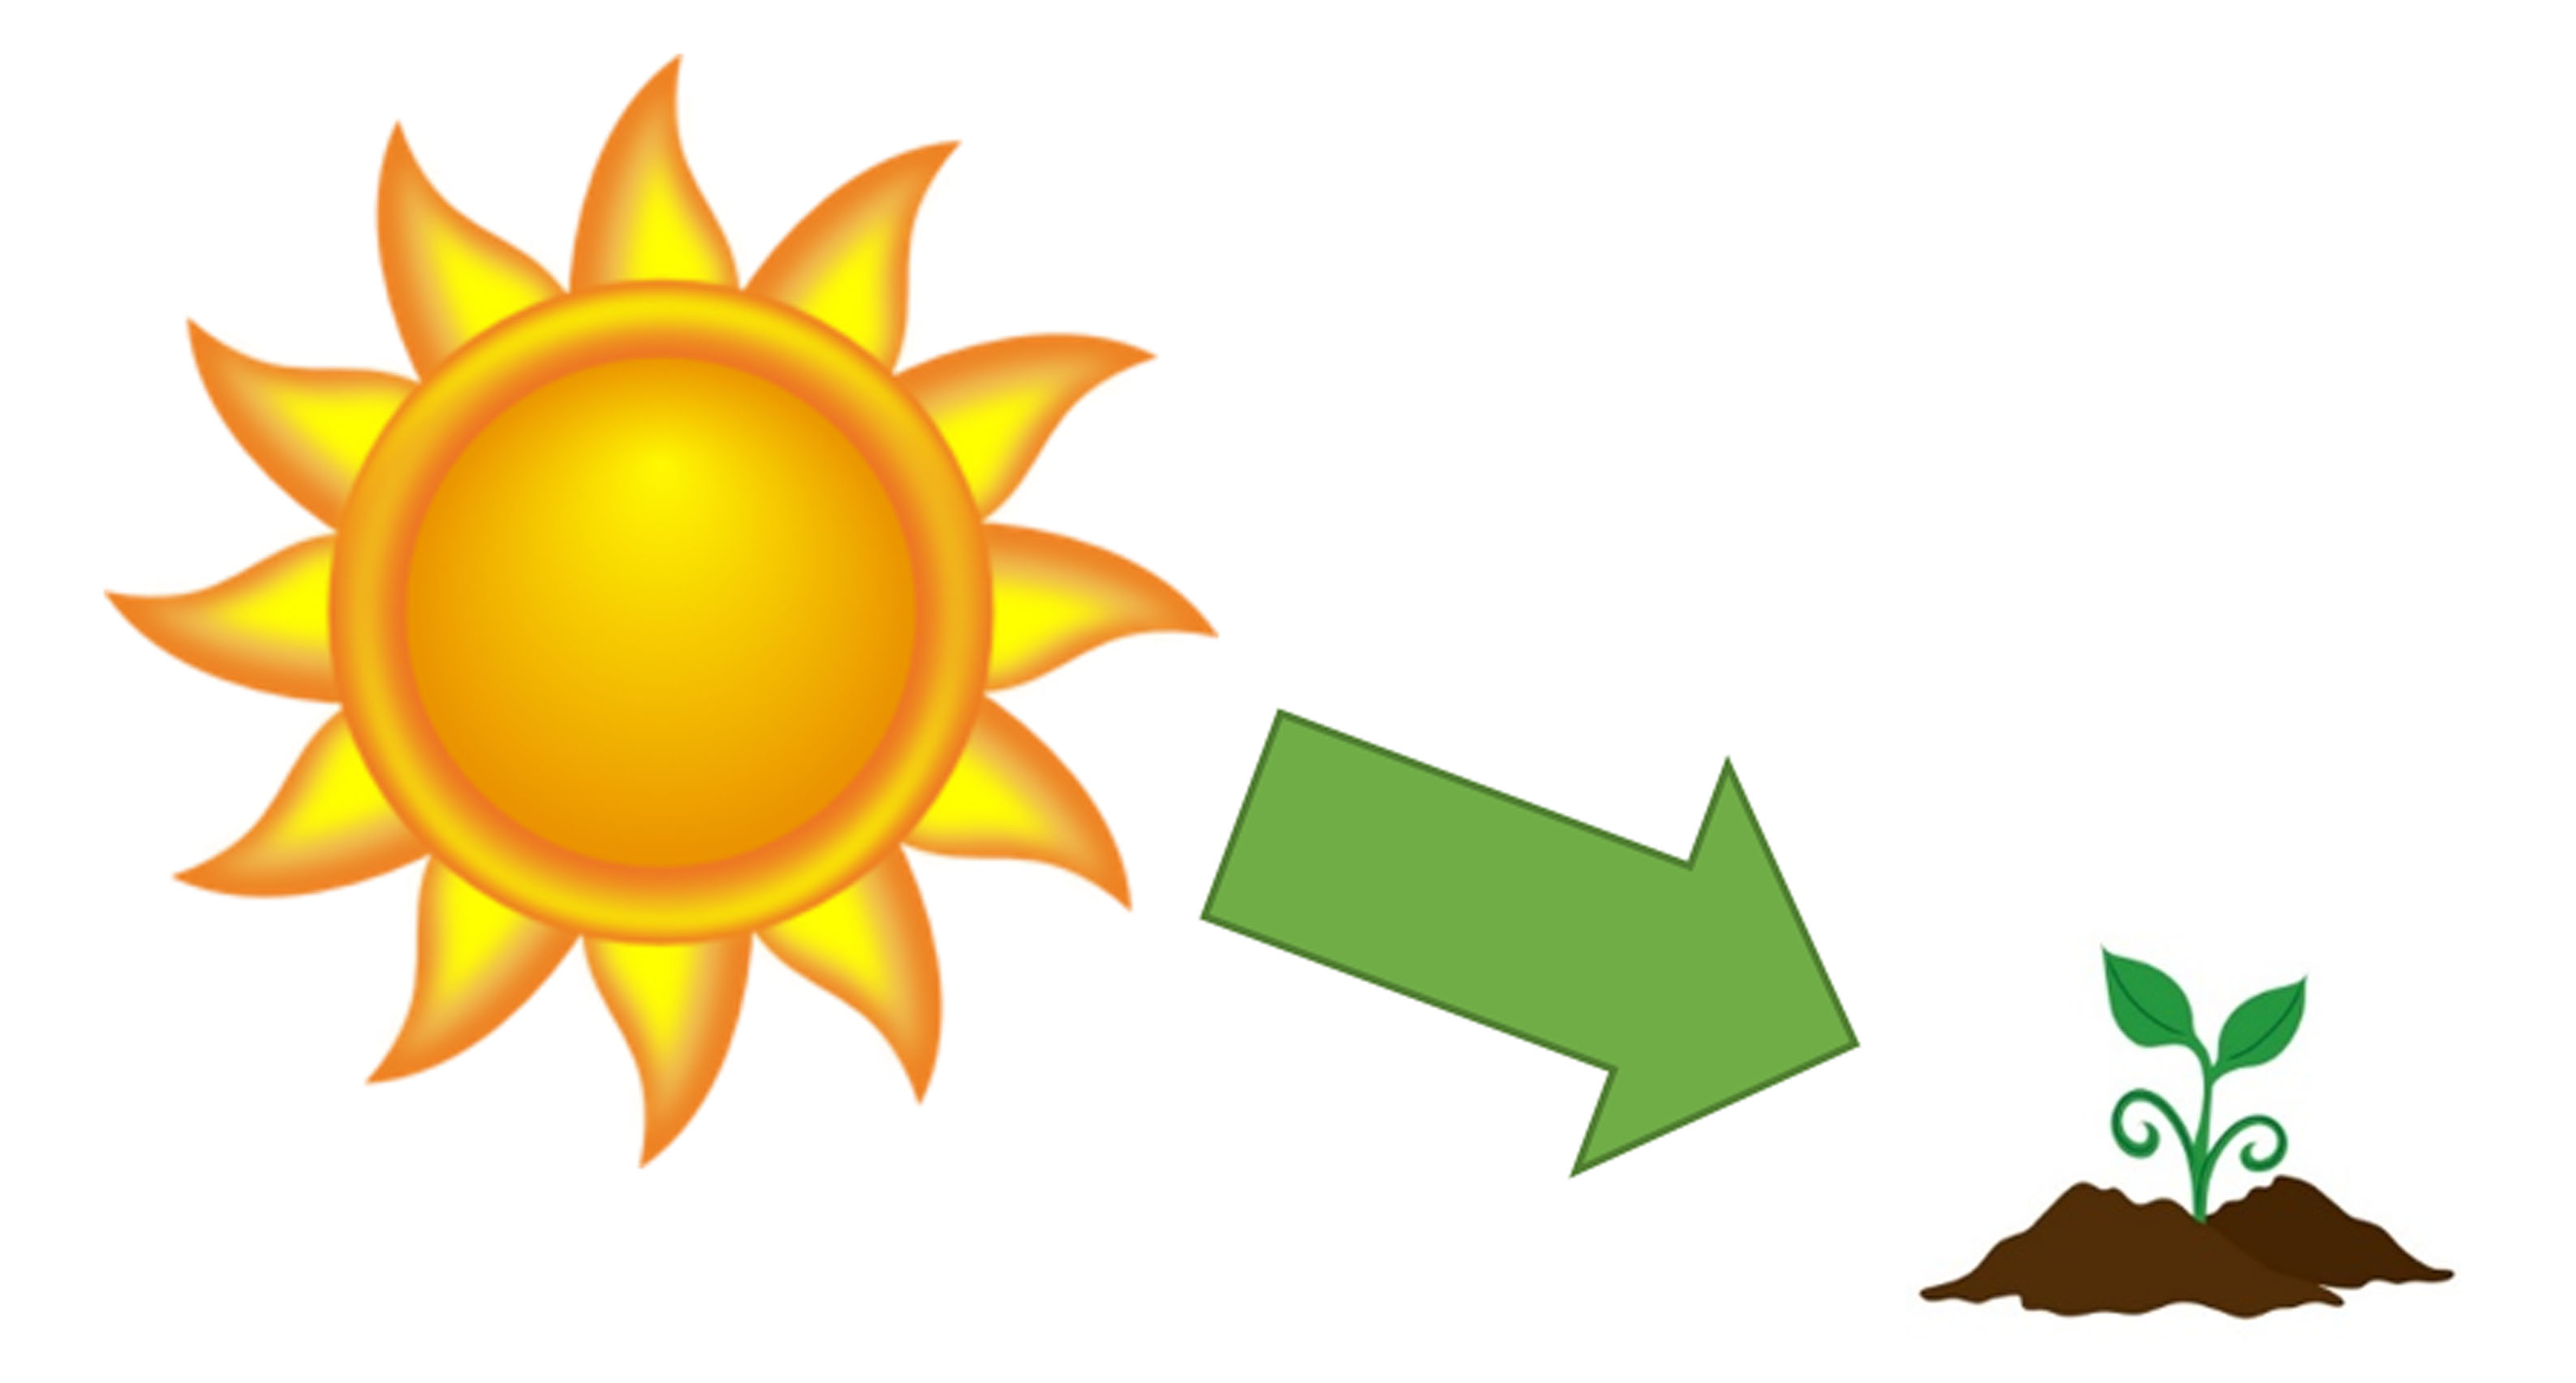 Sunny clipart sun plant. Energy free download best